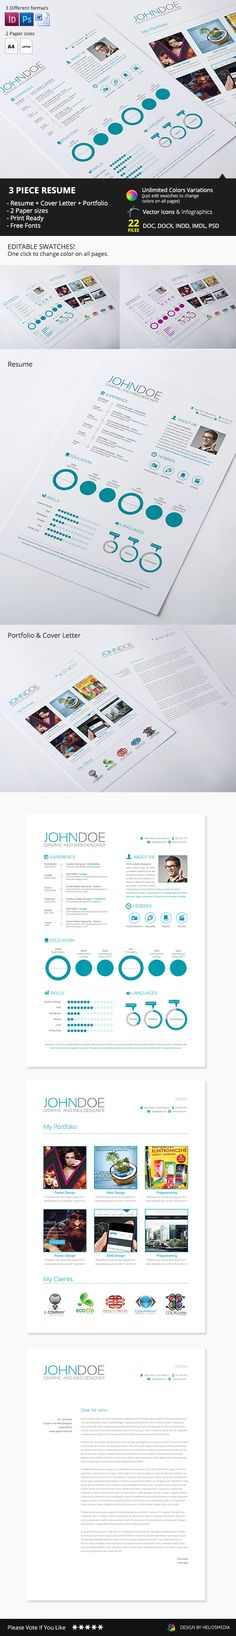 1000 ideas about Cool Resumes on Pinterest  Resume Resume Design and Resume Cv